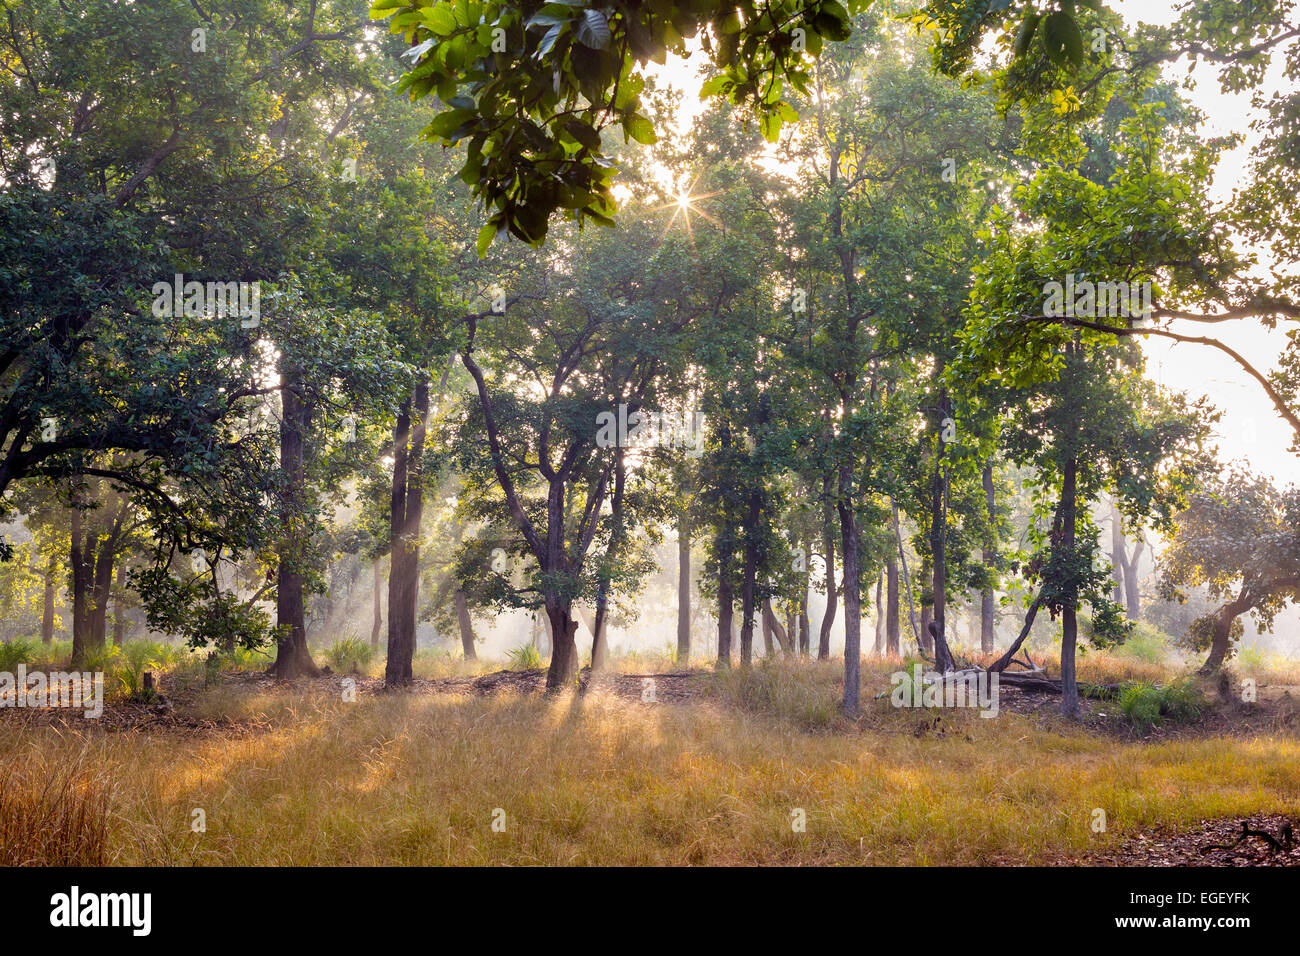 Mist and trees at dawn in Bandhavgarh National Park, India - Stock Image